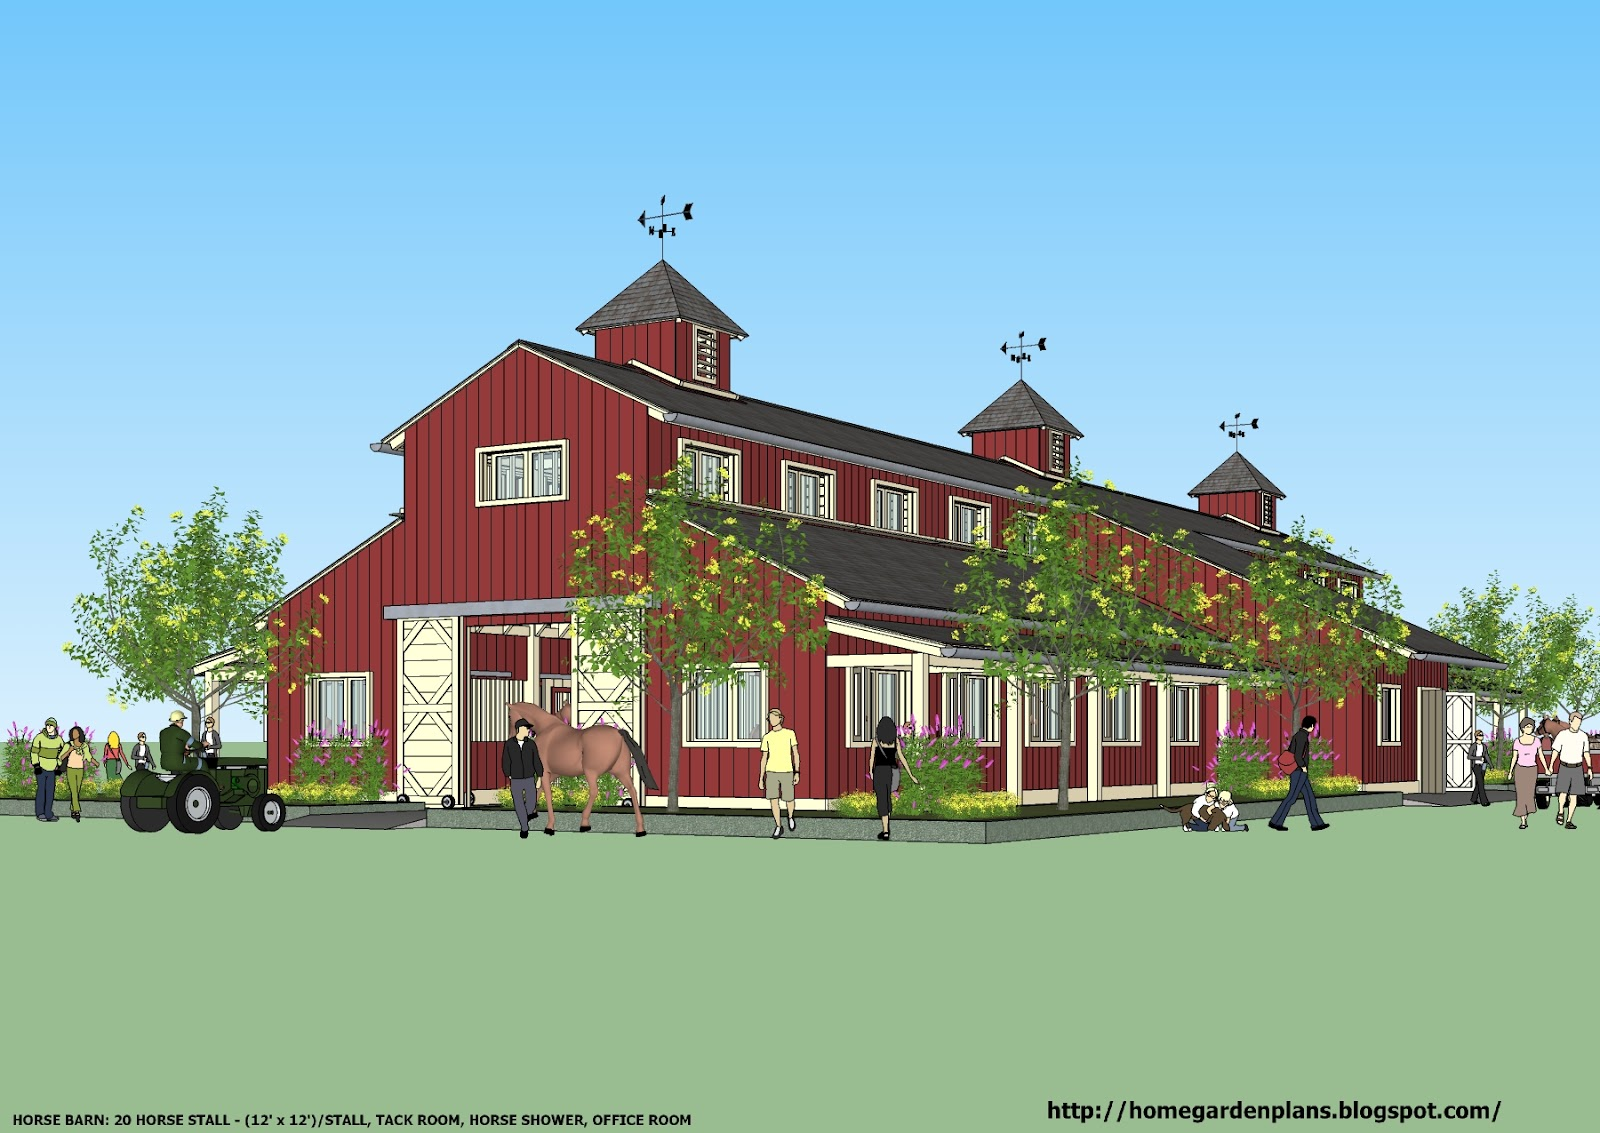 Home garden plans news b20h large horse barn plans for House barn combo plans